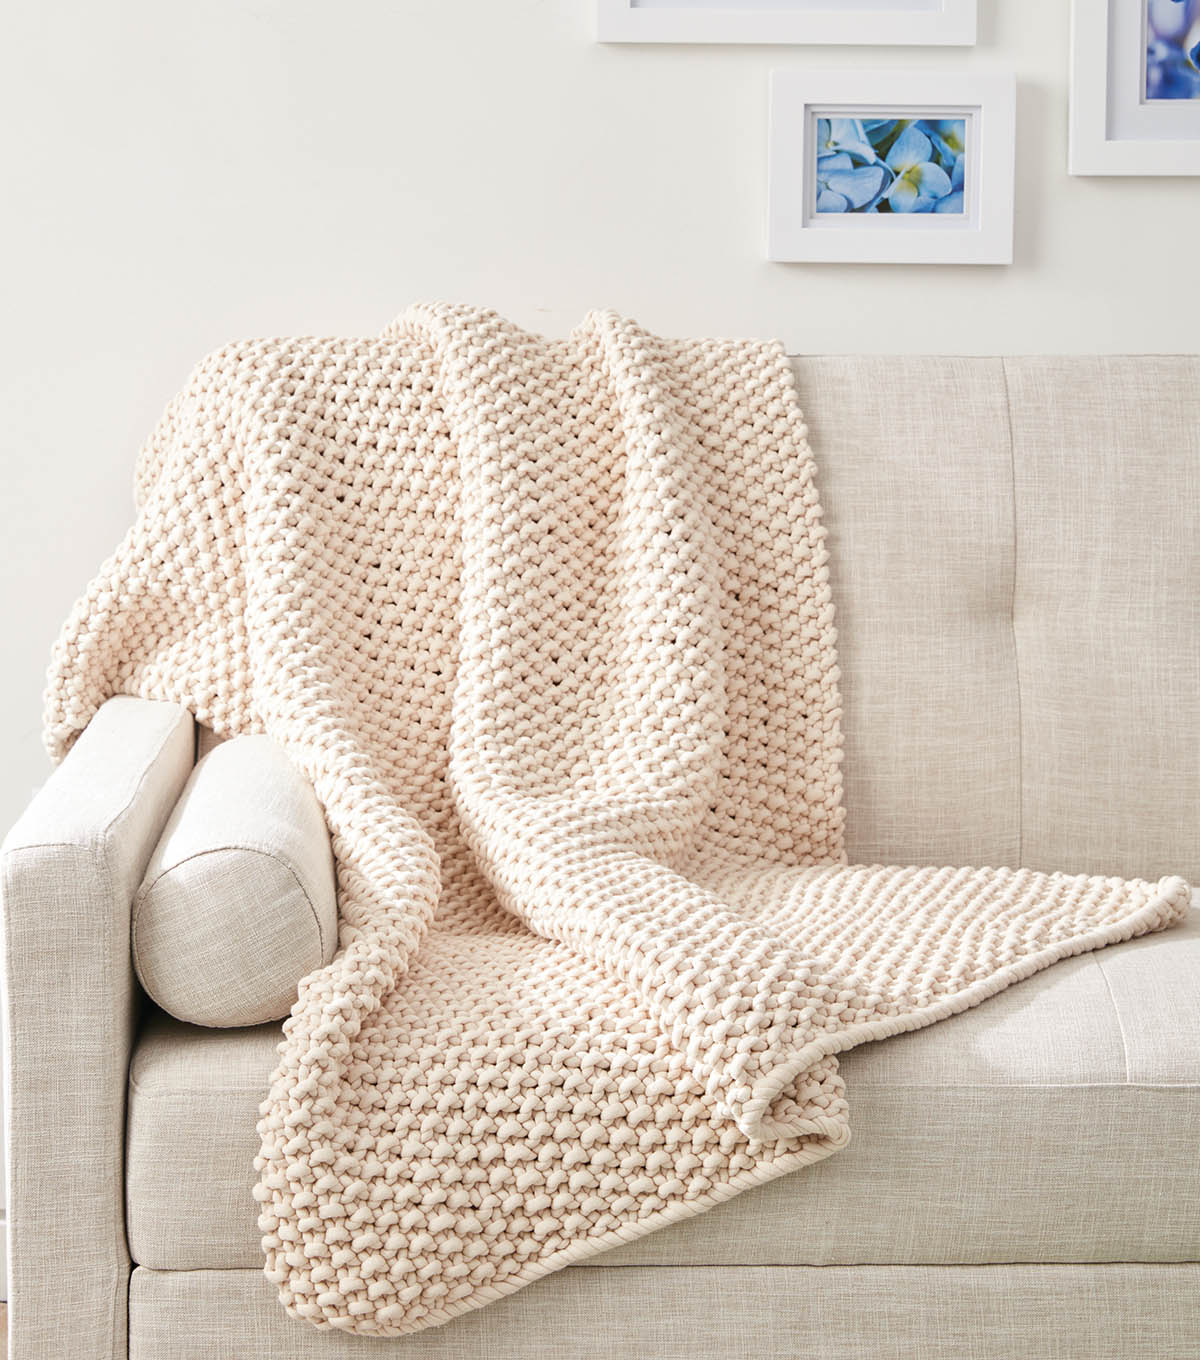 How to Make A Knit Seed Stitch Throw | JOANN